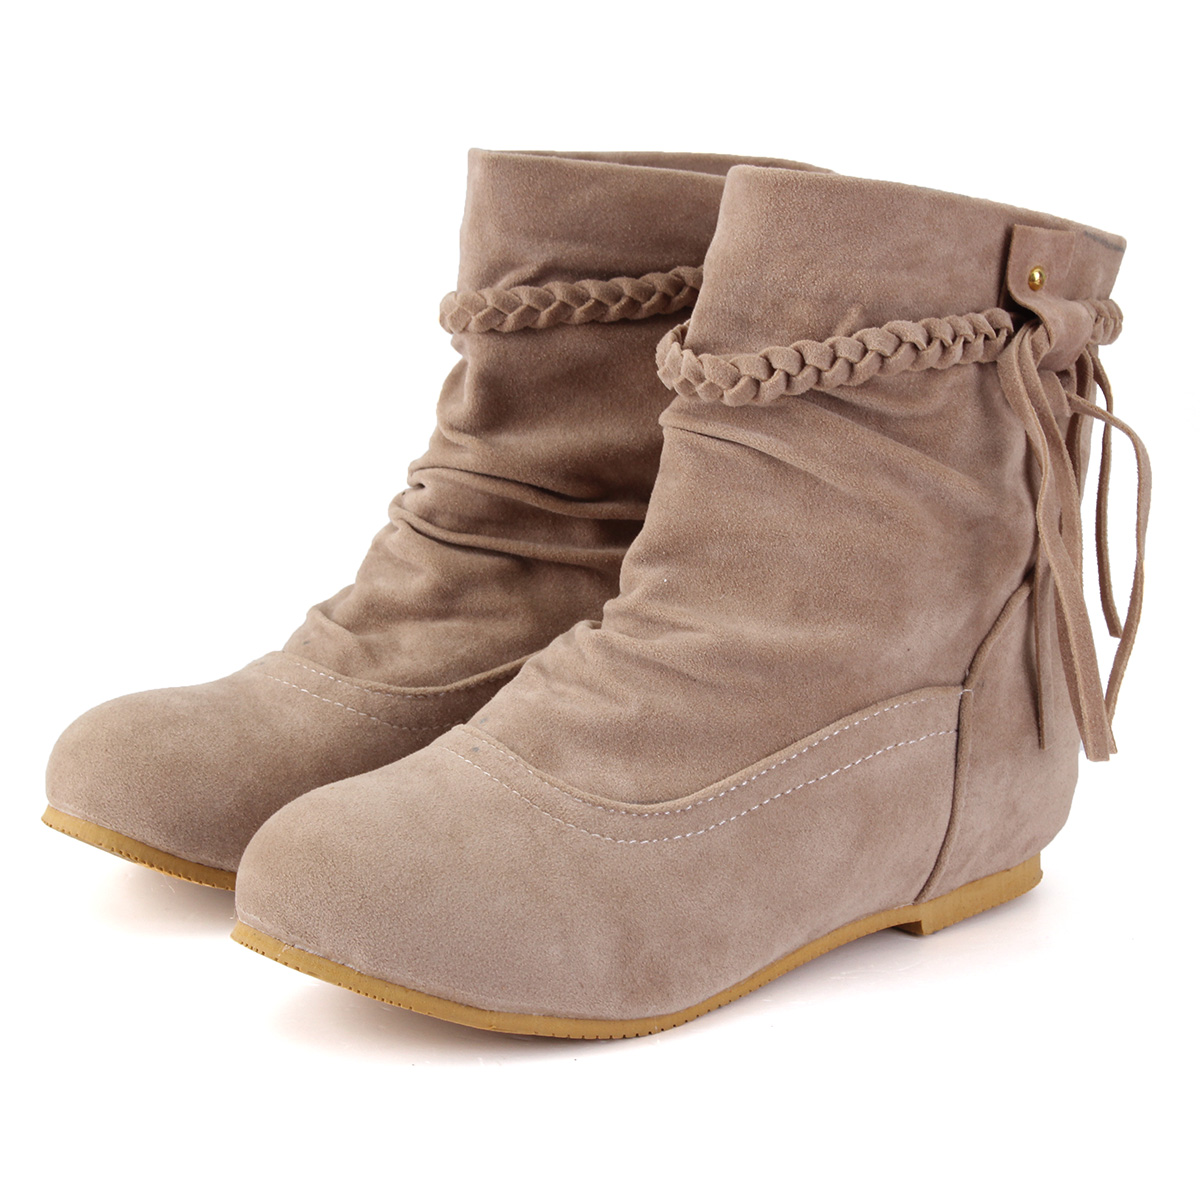 Awesome Now, It Has Been Named The UKs Most Popular Style Of Shoe, Ahead Of Ankle Boots, Flat Sandals And Brogues  Also Found The Average Brit Owns Nine Pairs Of Shoes  With Women Owning An Average Of Th